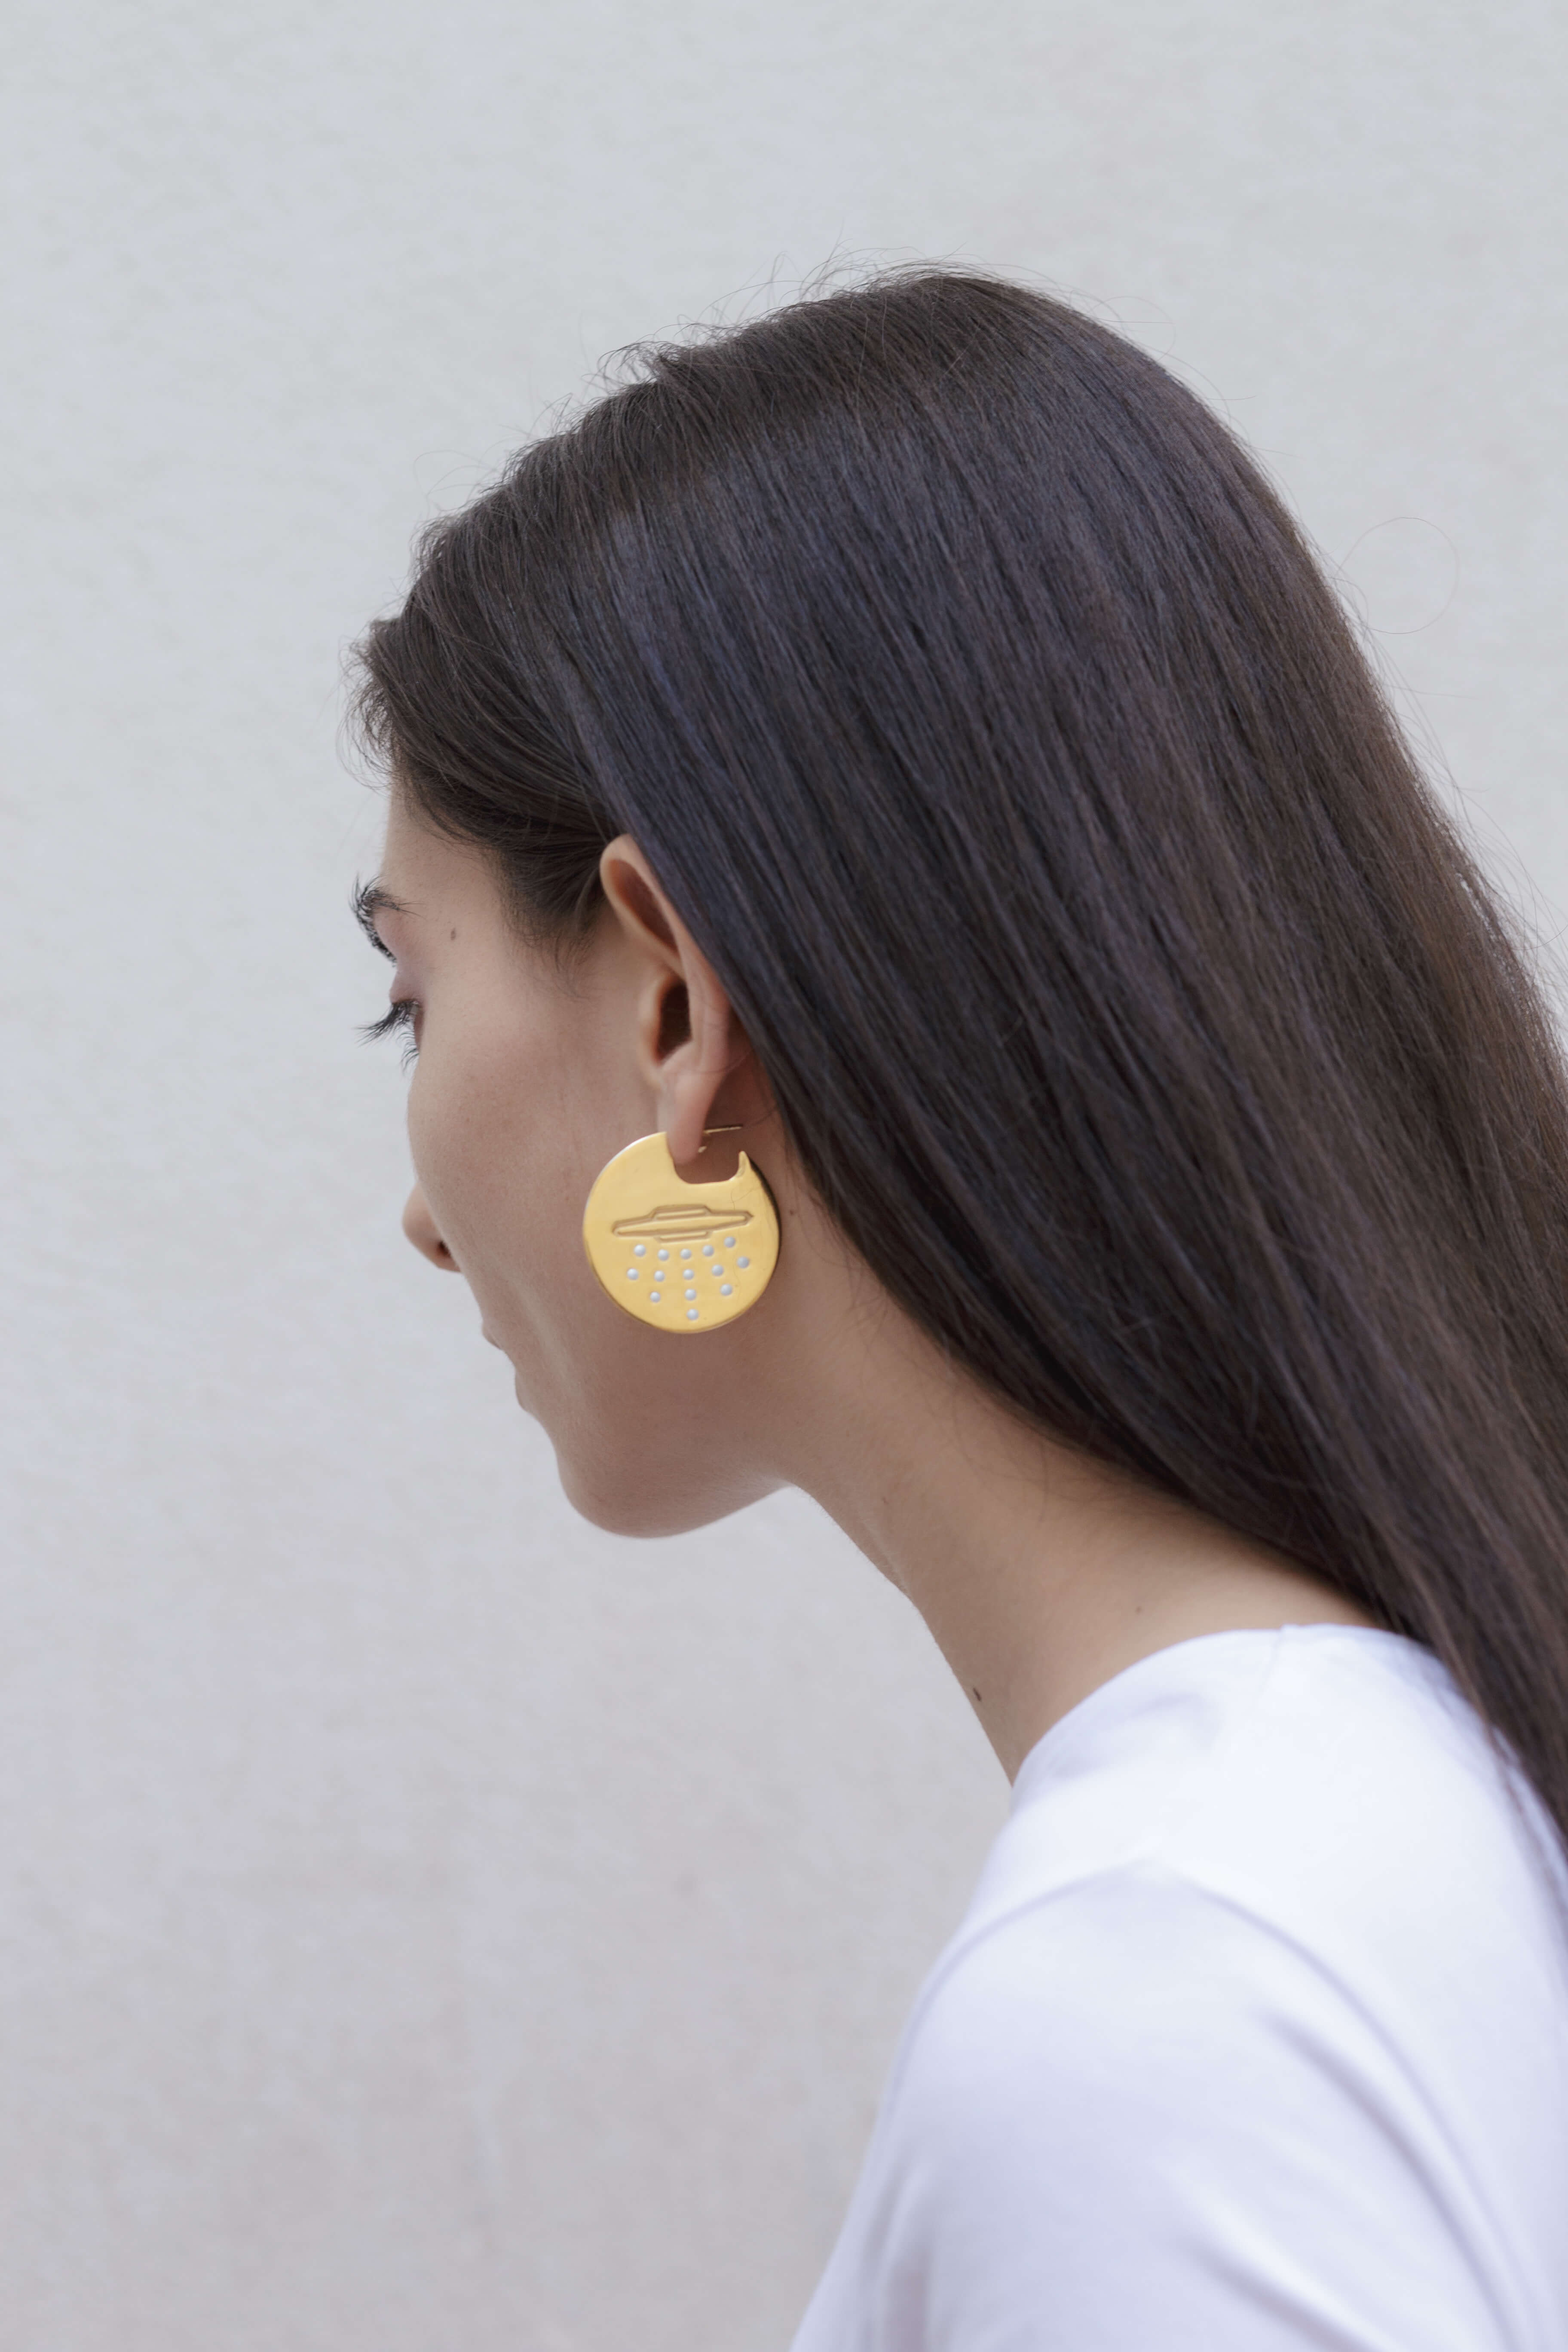 the-ufo-disk-earrings-by-glenda-lopez-lookbook